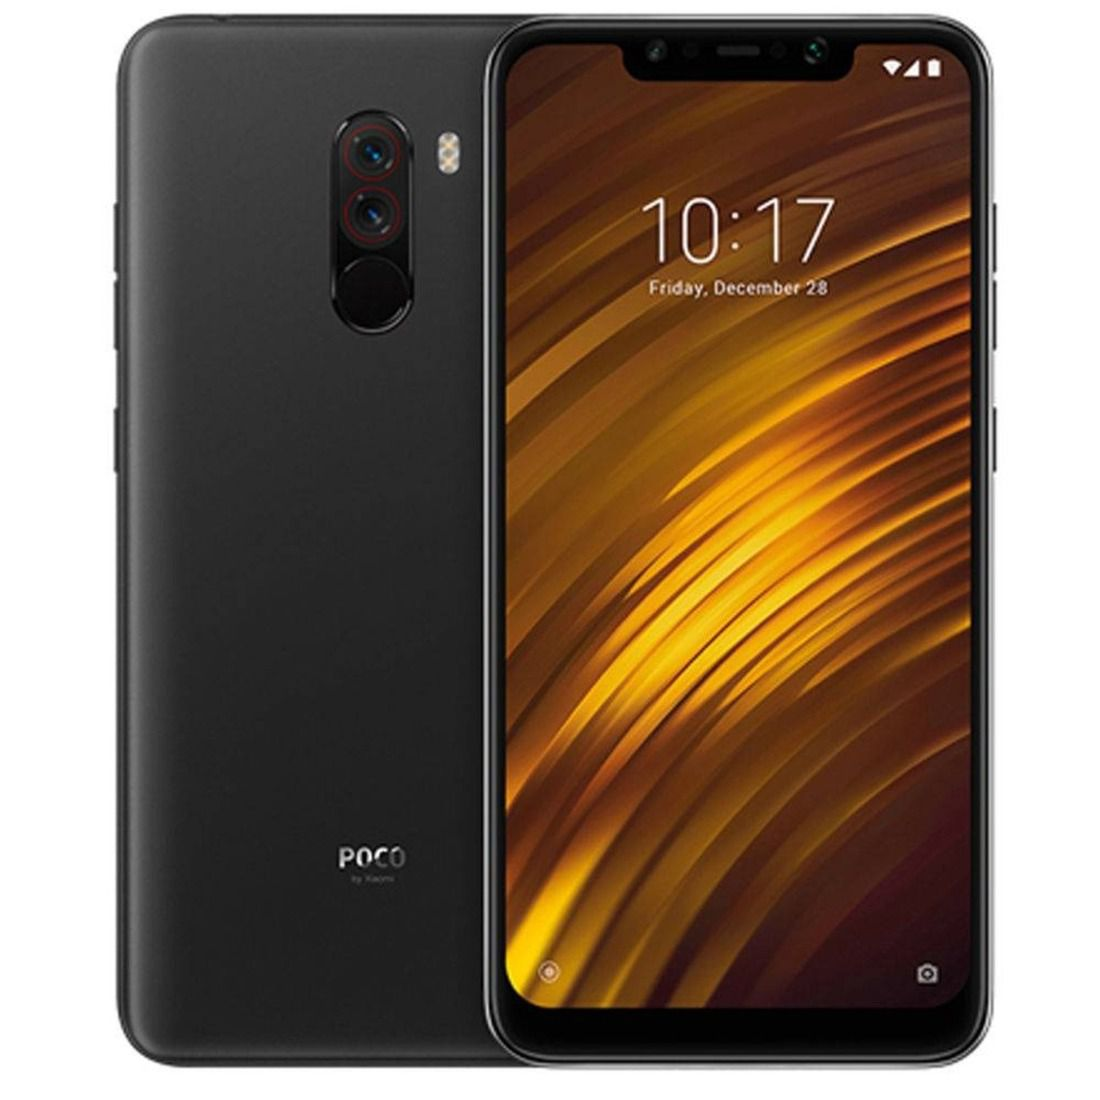 Smartphone Pocophone F1 6GB Ram Tela 6.18 64GB Camera Dupla 12+5MP - Preto